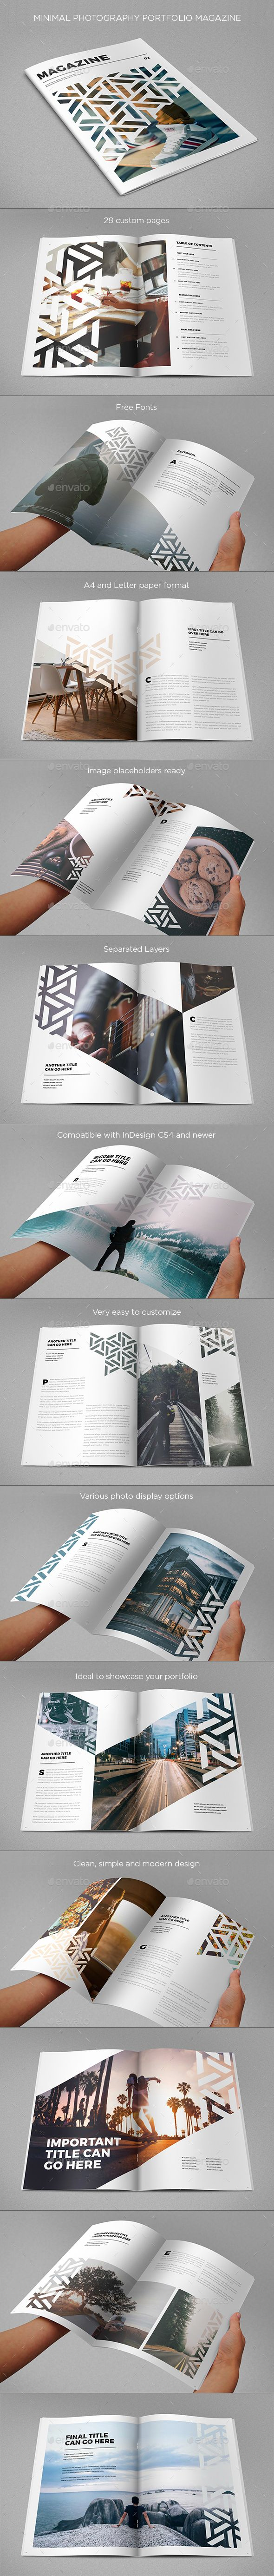 Modern Cool Pattern Magazine by AbraDesign MODERN COOL PATTERN MAGAZINEClean, modern and simple design ideal for any purposes. Very easy to adapt and customize. DETAILS· 2